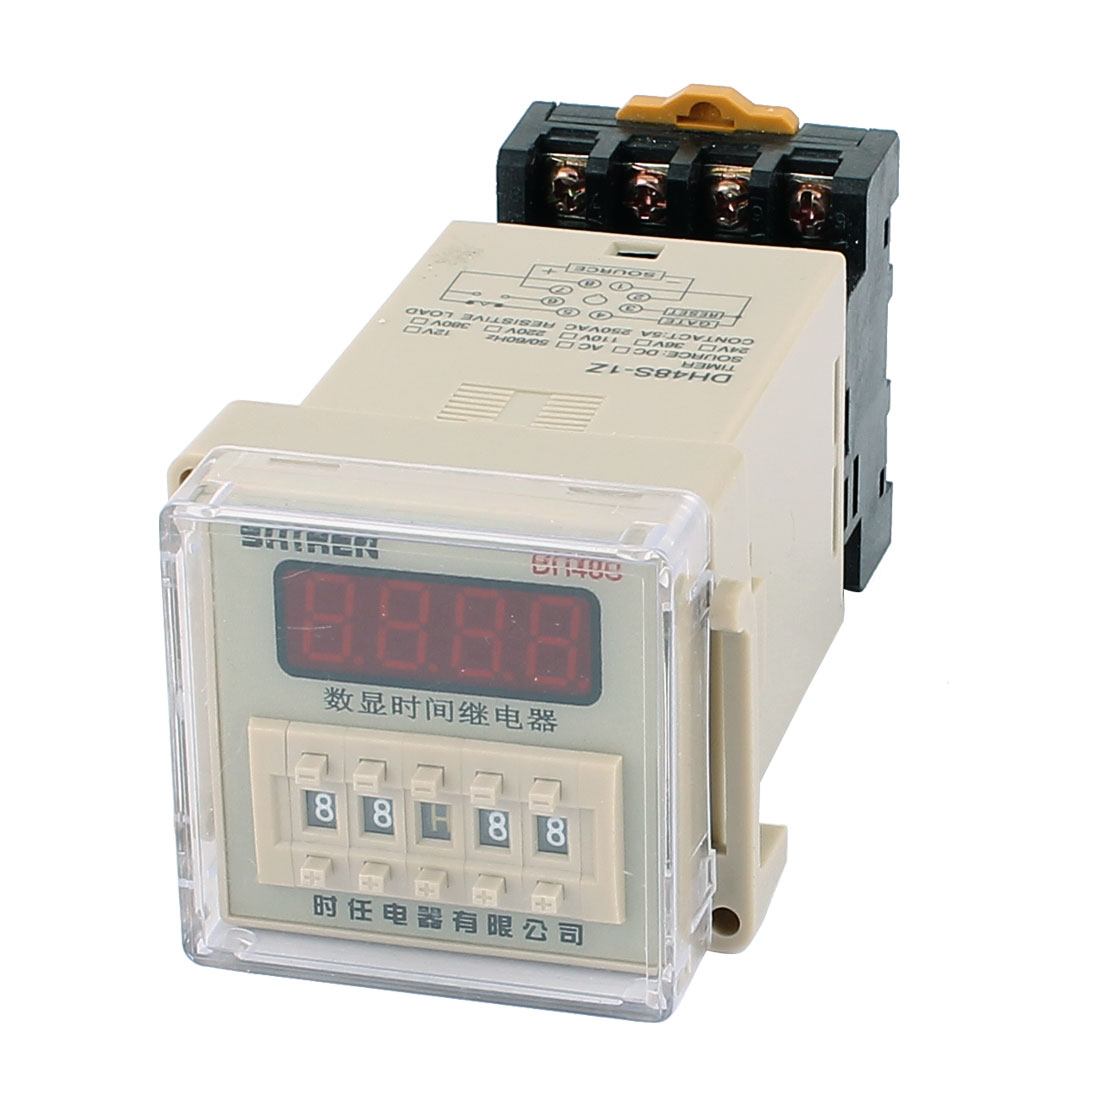 DH48S-11 AC/DC12V 11 Terminals 0.01S-9999H LCD Display Time Timer Delay Relay w Socket